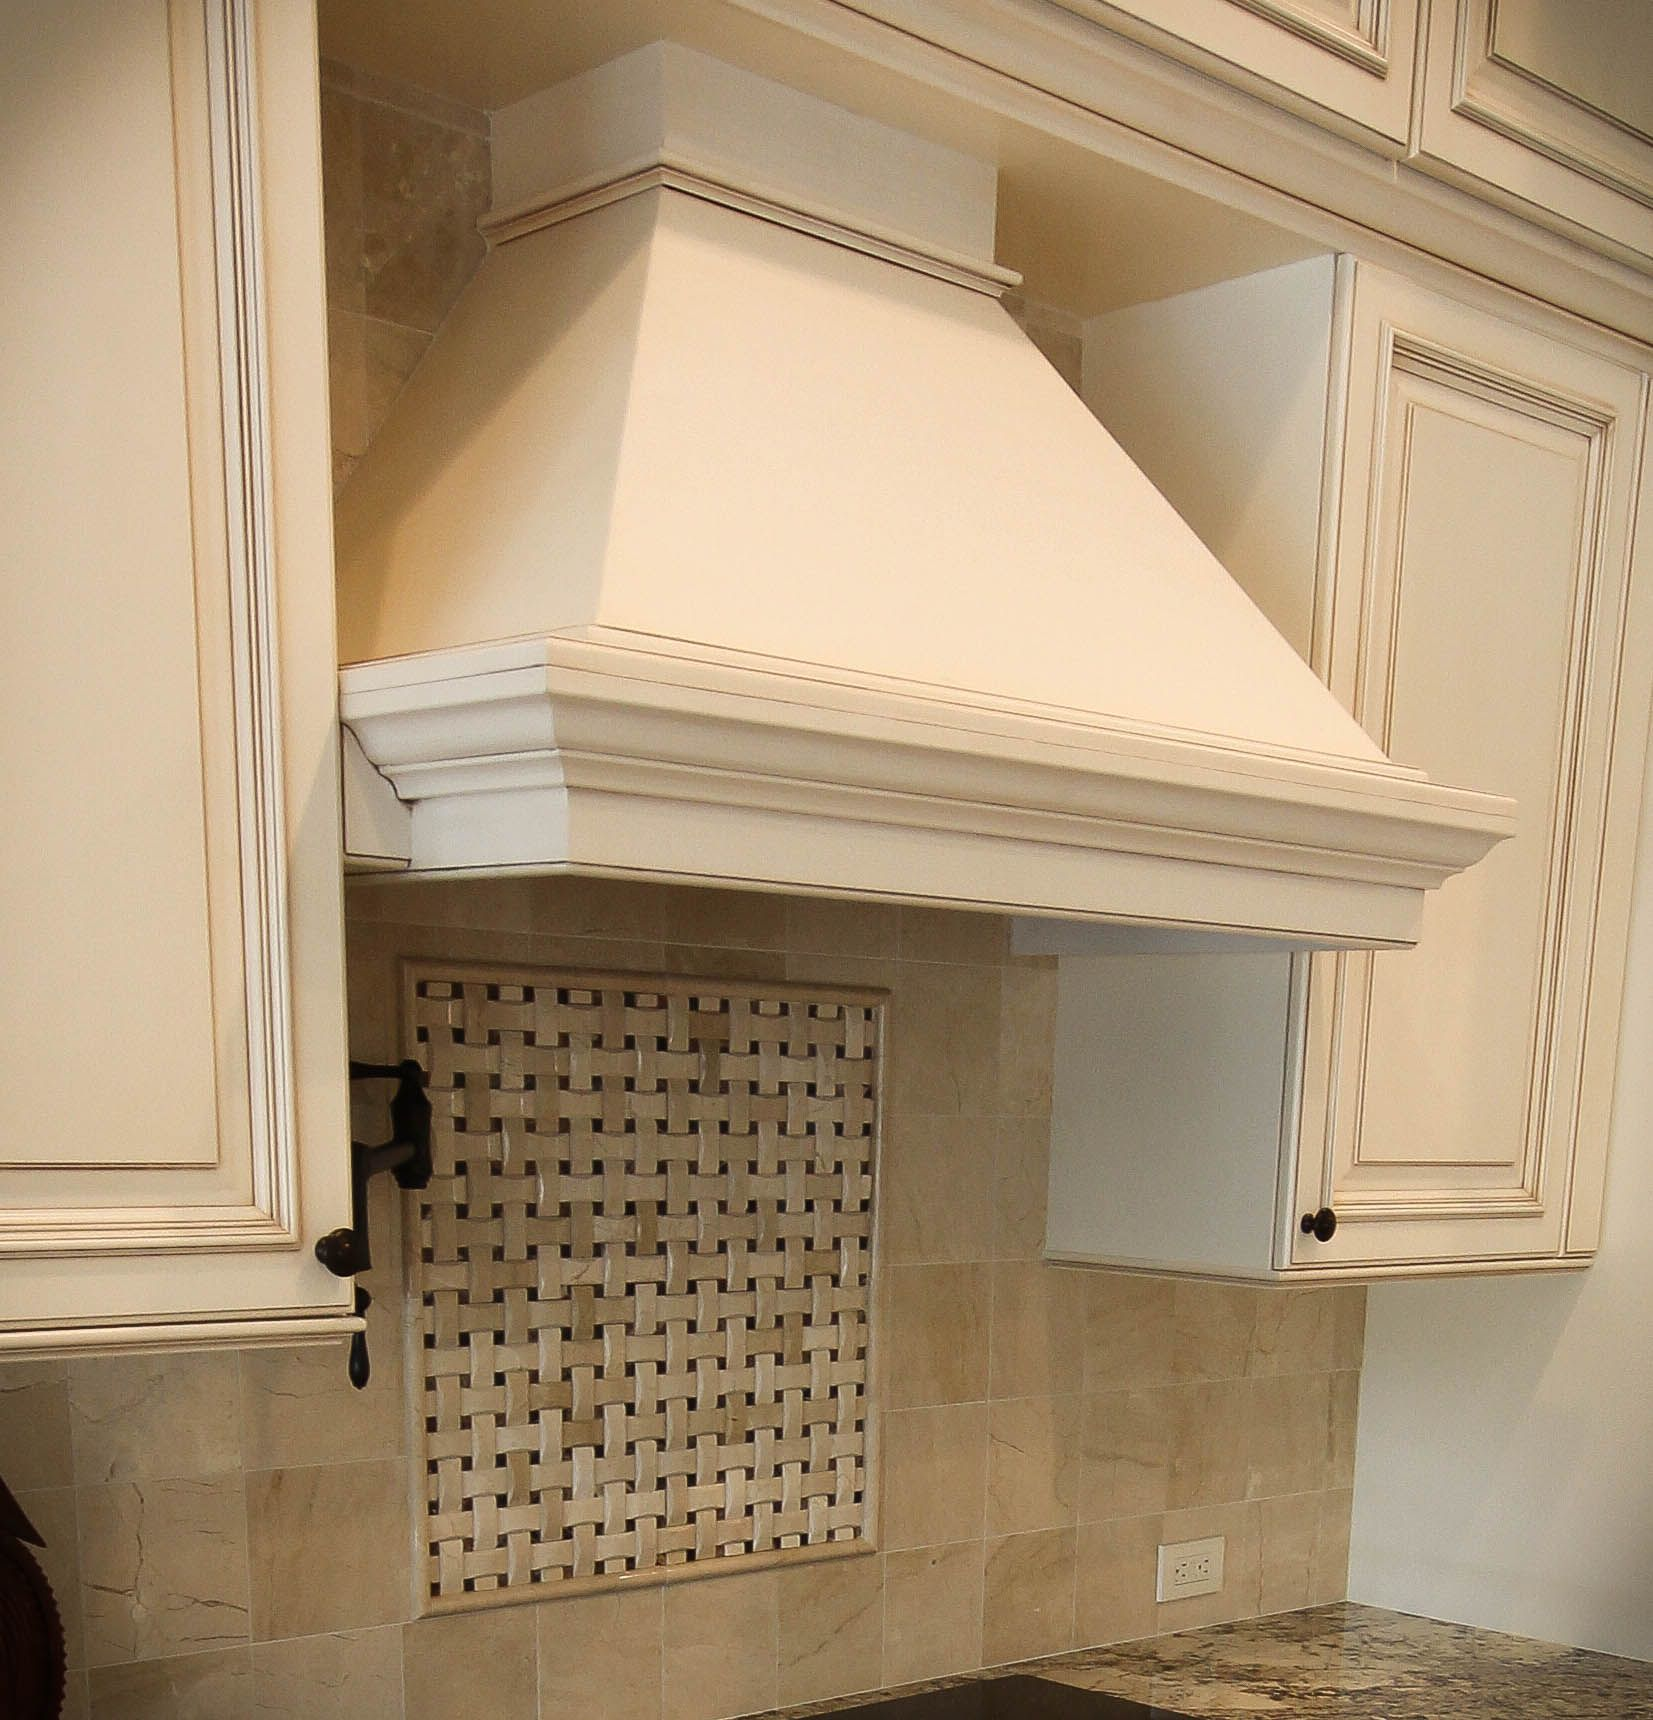 Kitchen Remodel Transitional Traditional White Cabinets Square Raised Panel Door Sty Kitchen Remodel Design Remodeling Renovation Italian Kitchen Decor